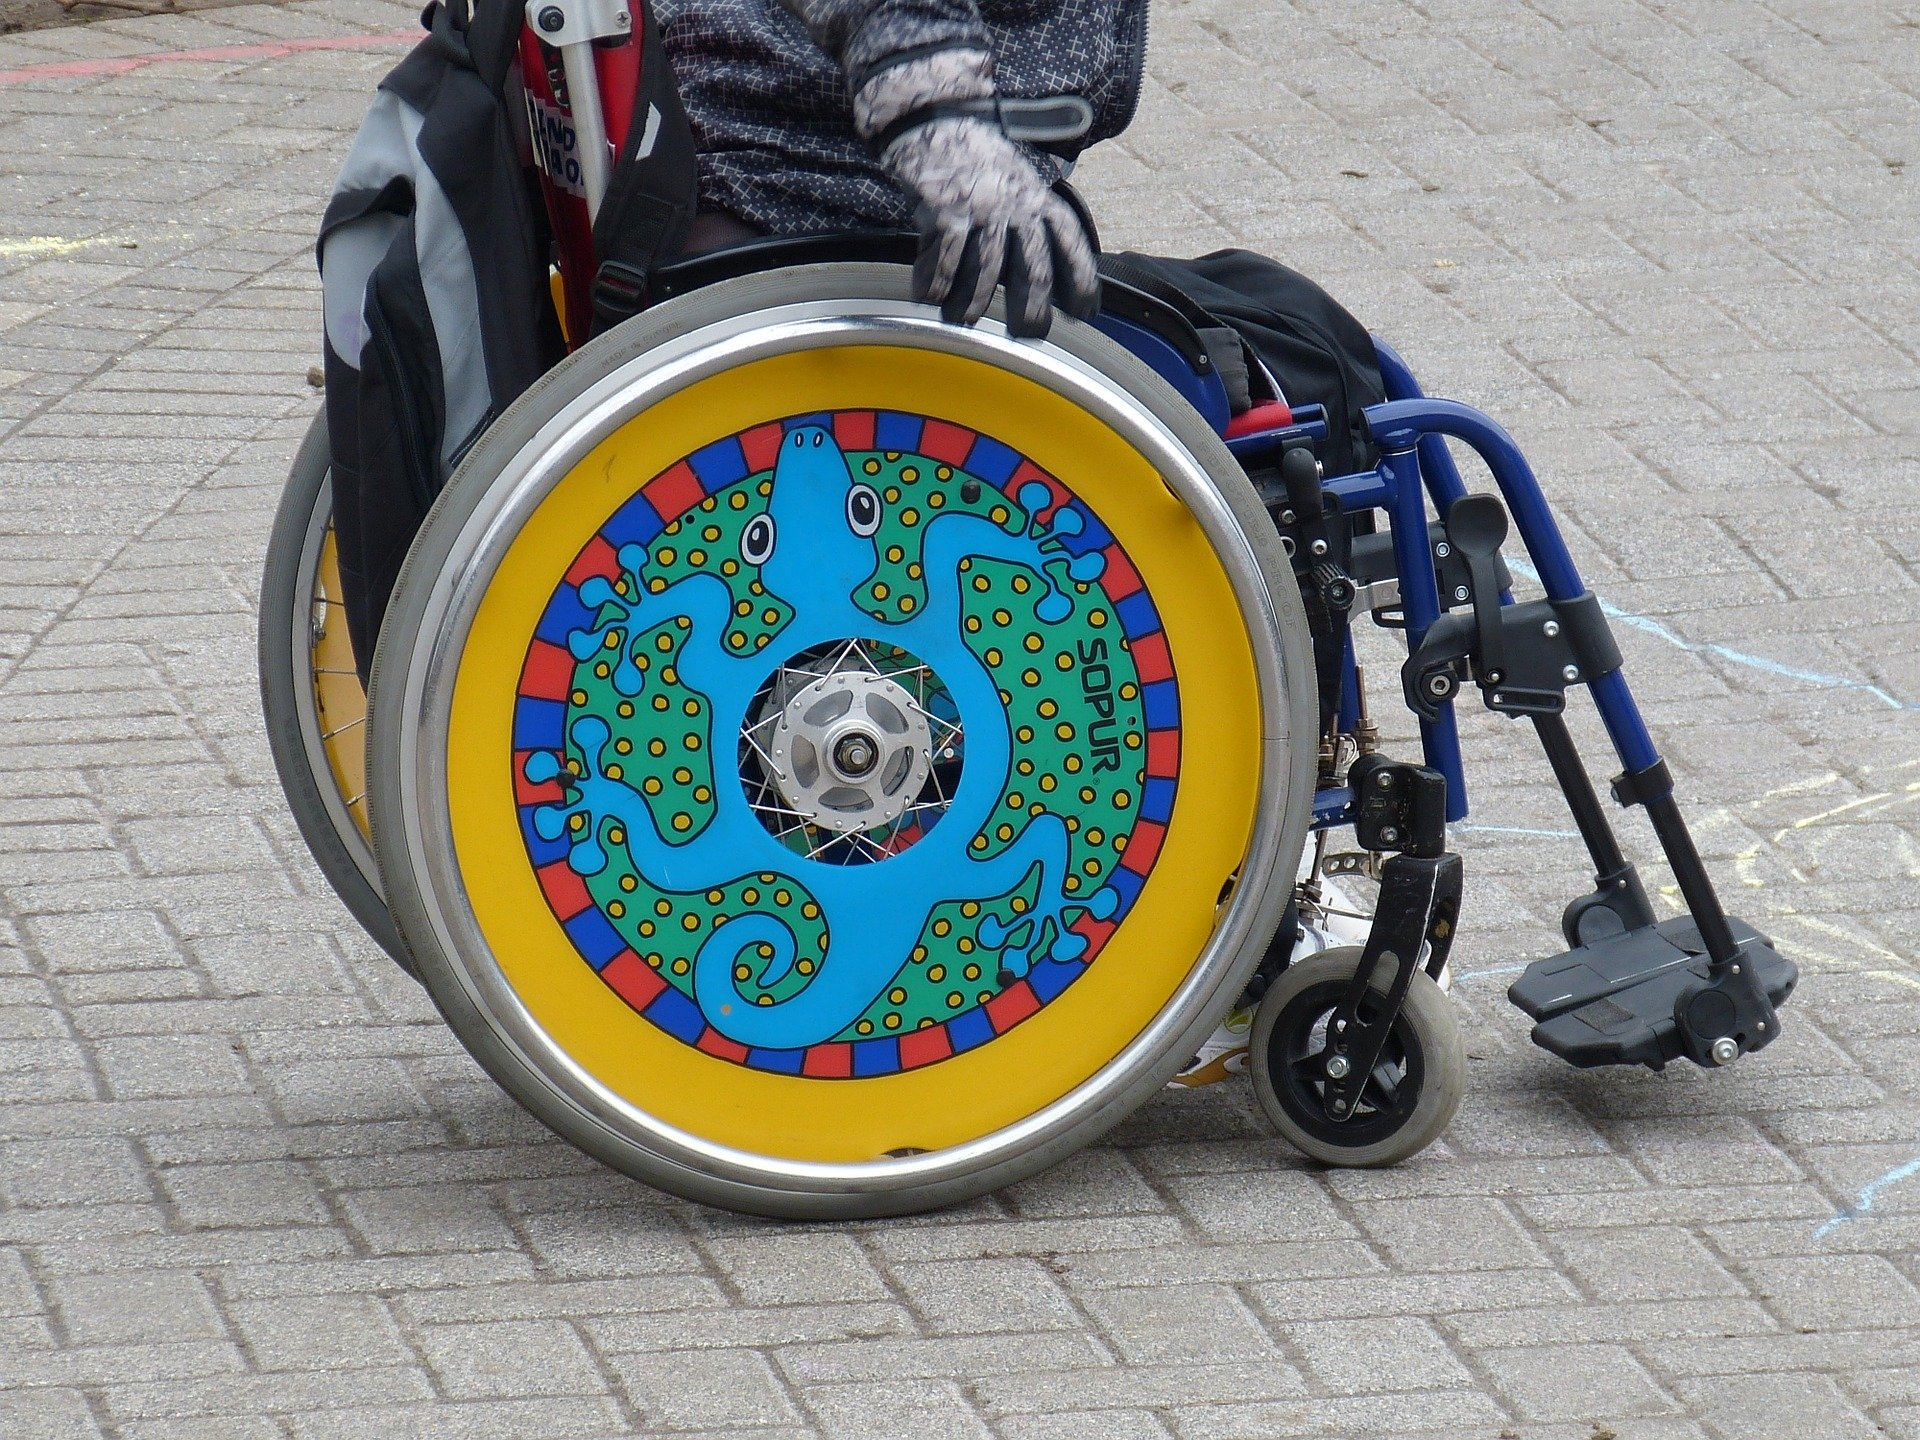 Photo of wheelchair with colourful design of a lizard on the wheel